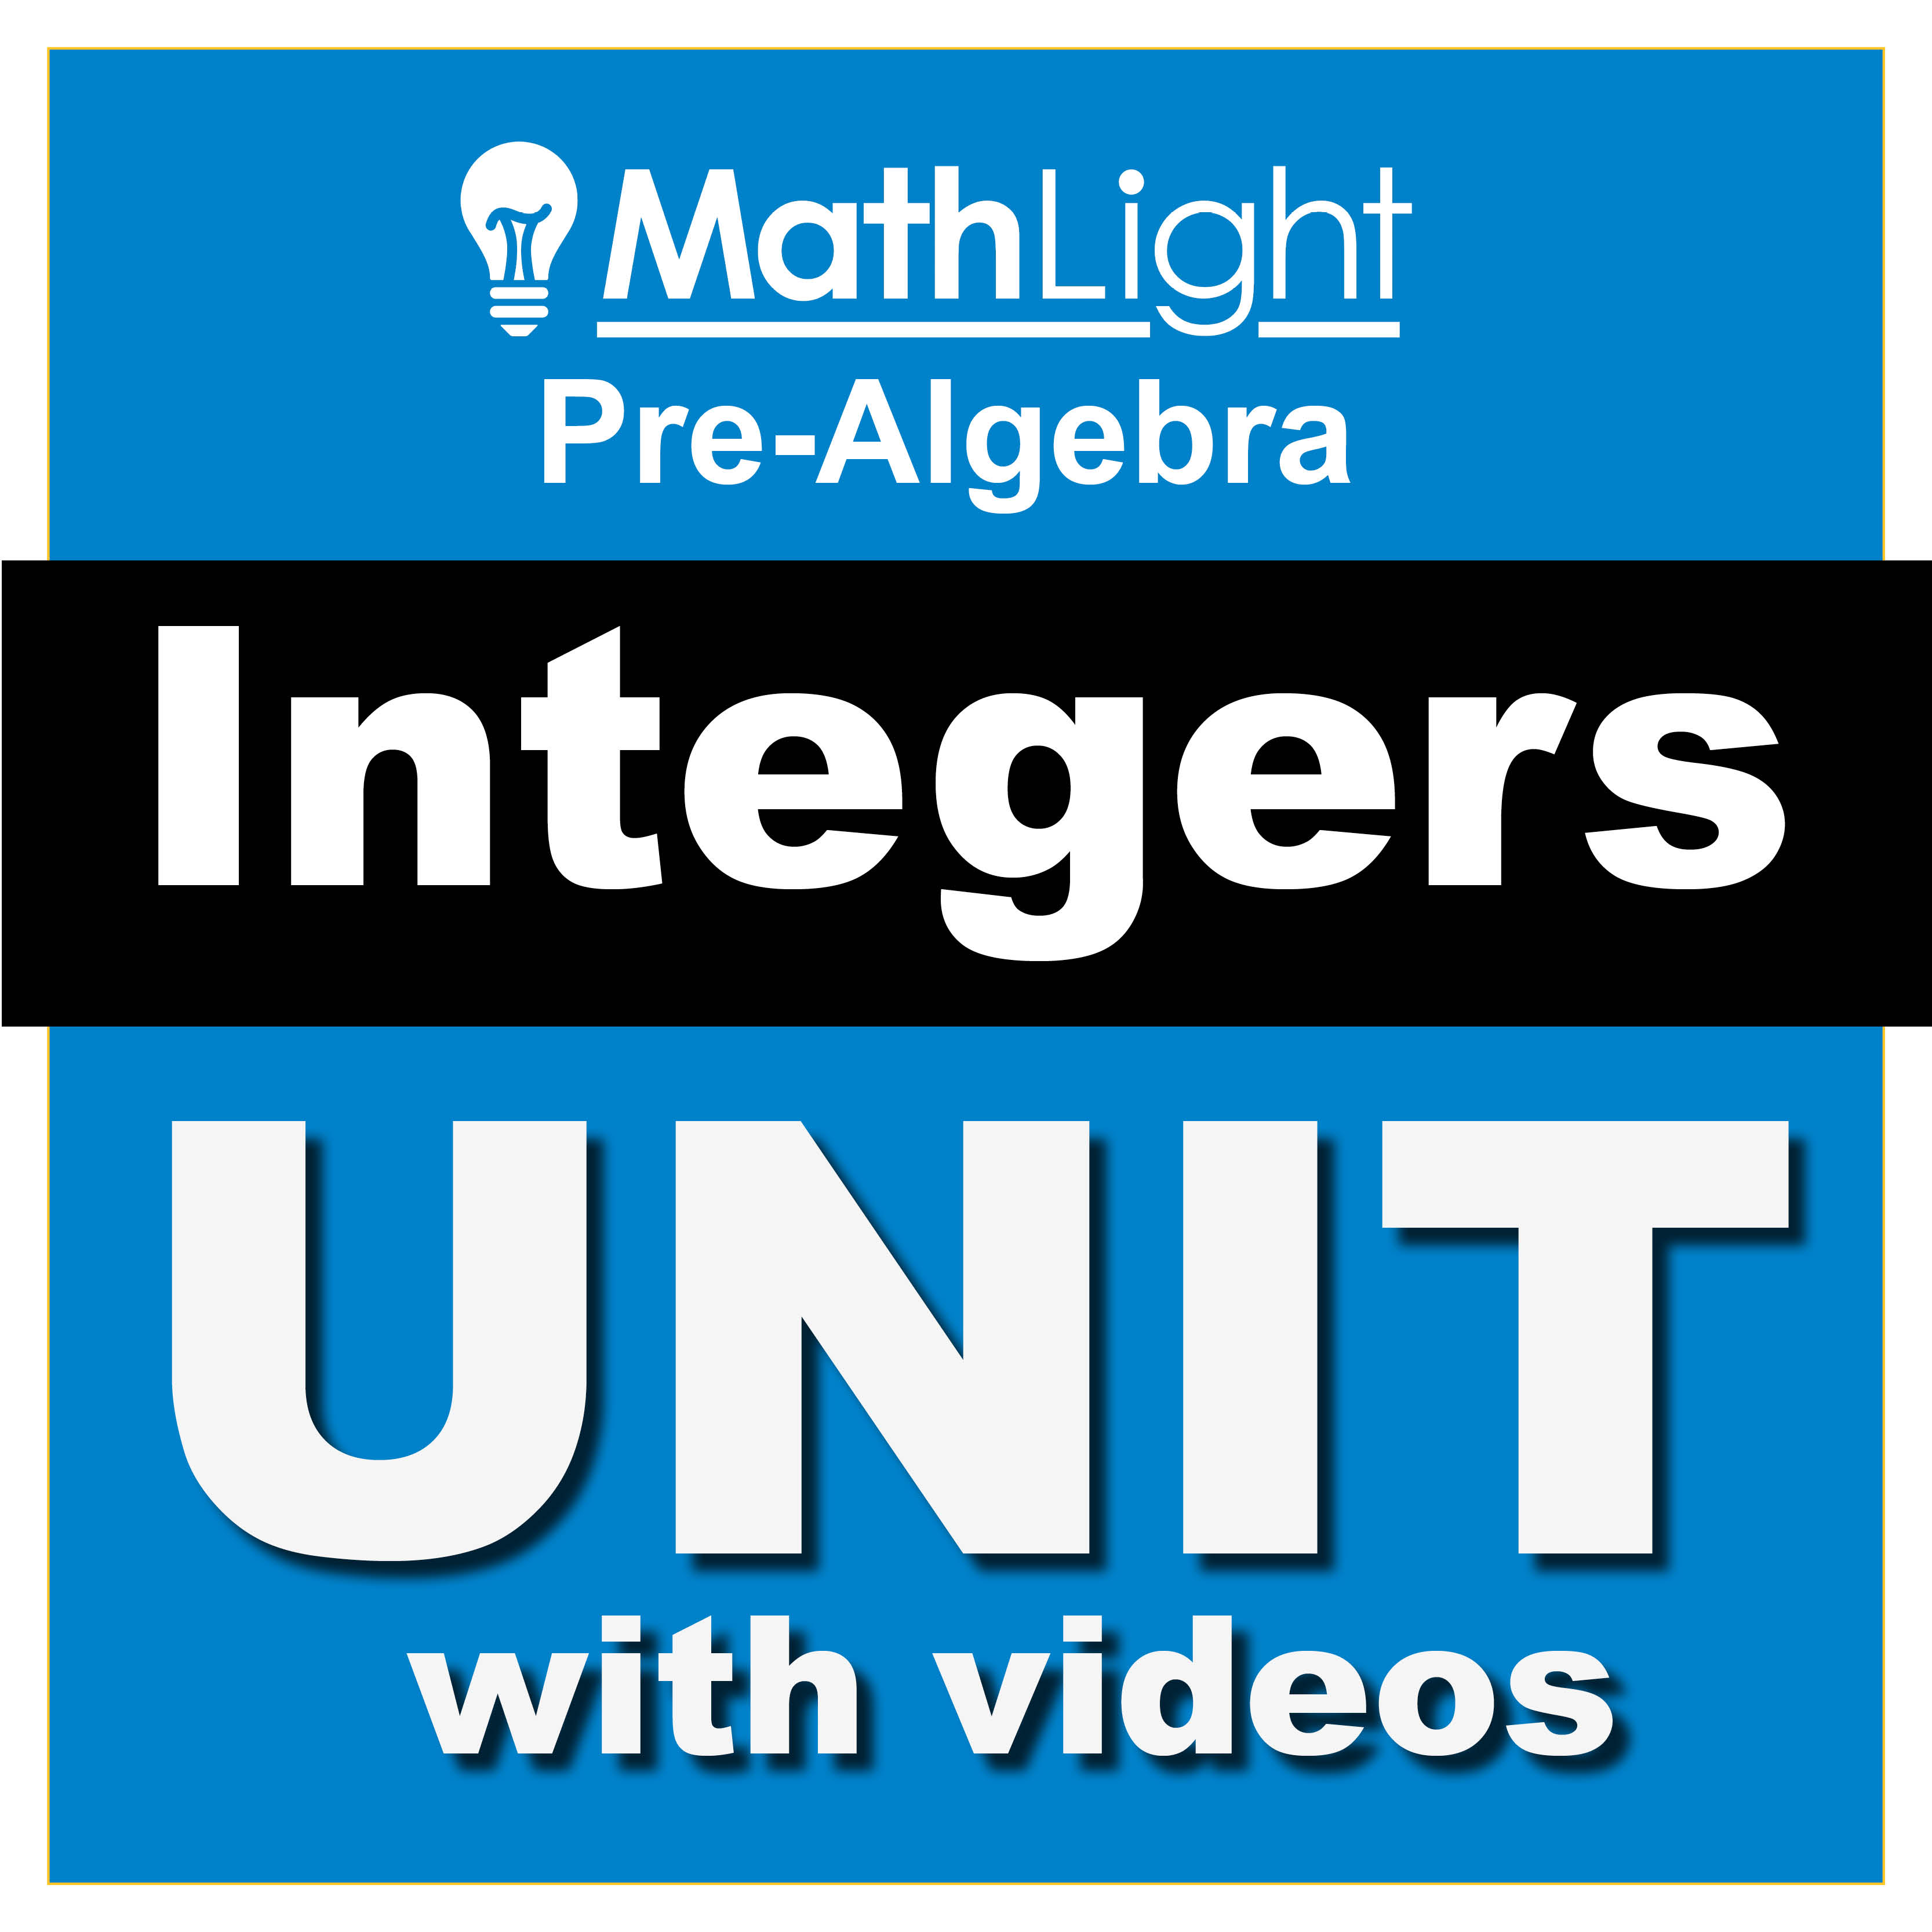 free integers unit teaching adding integers, subtracting integers, multiplying integers and more. full curriculum with videos